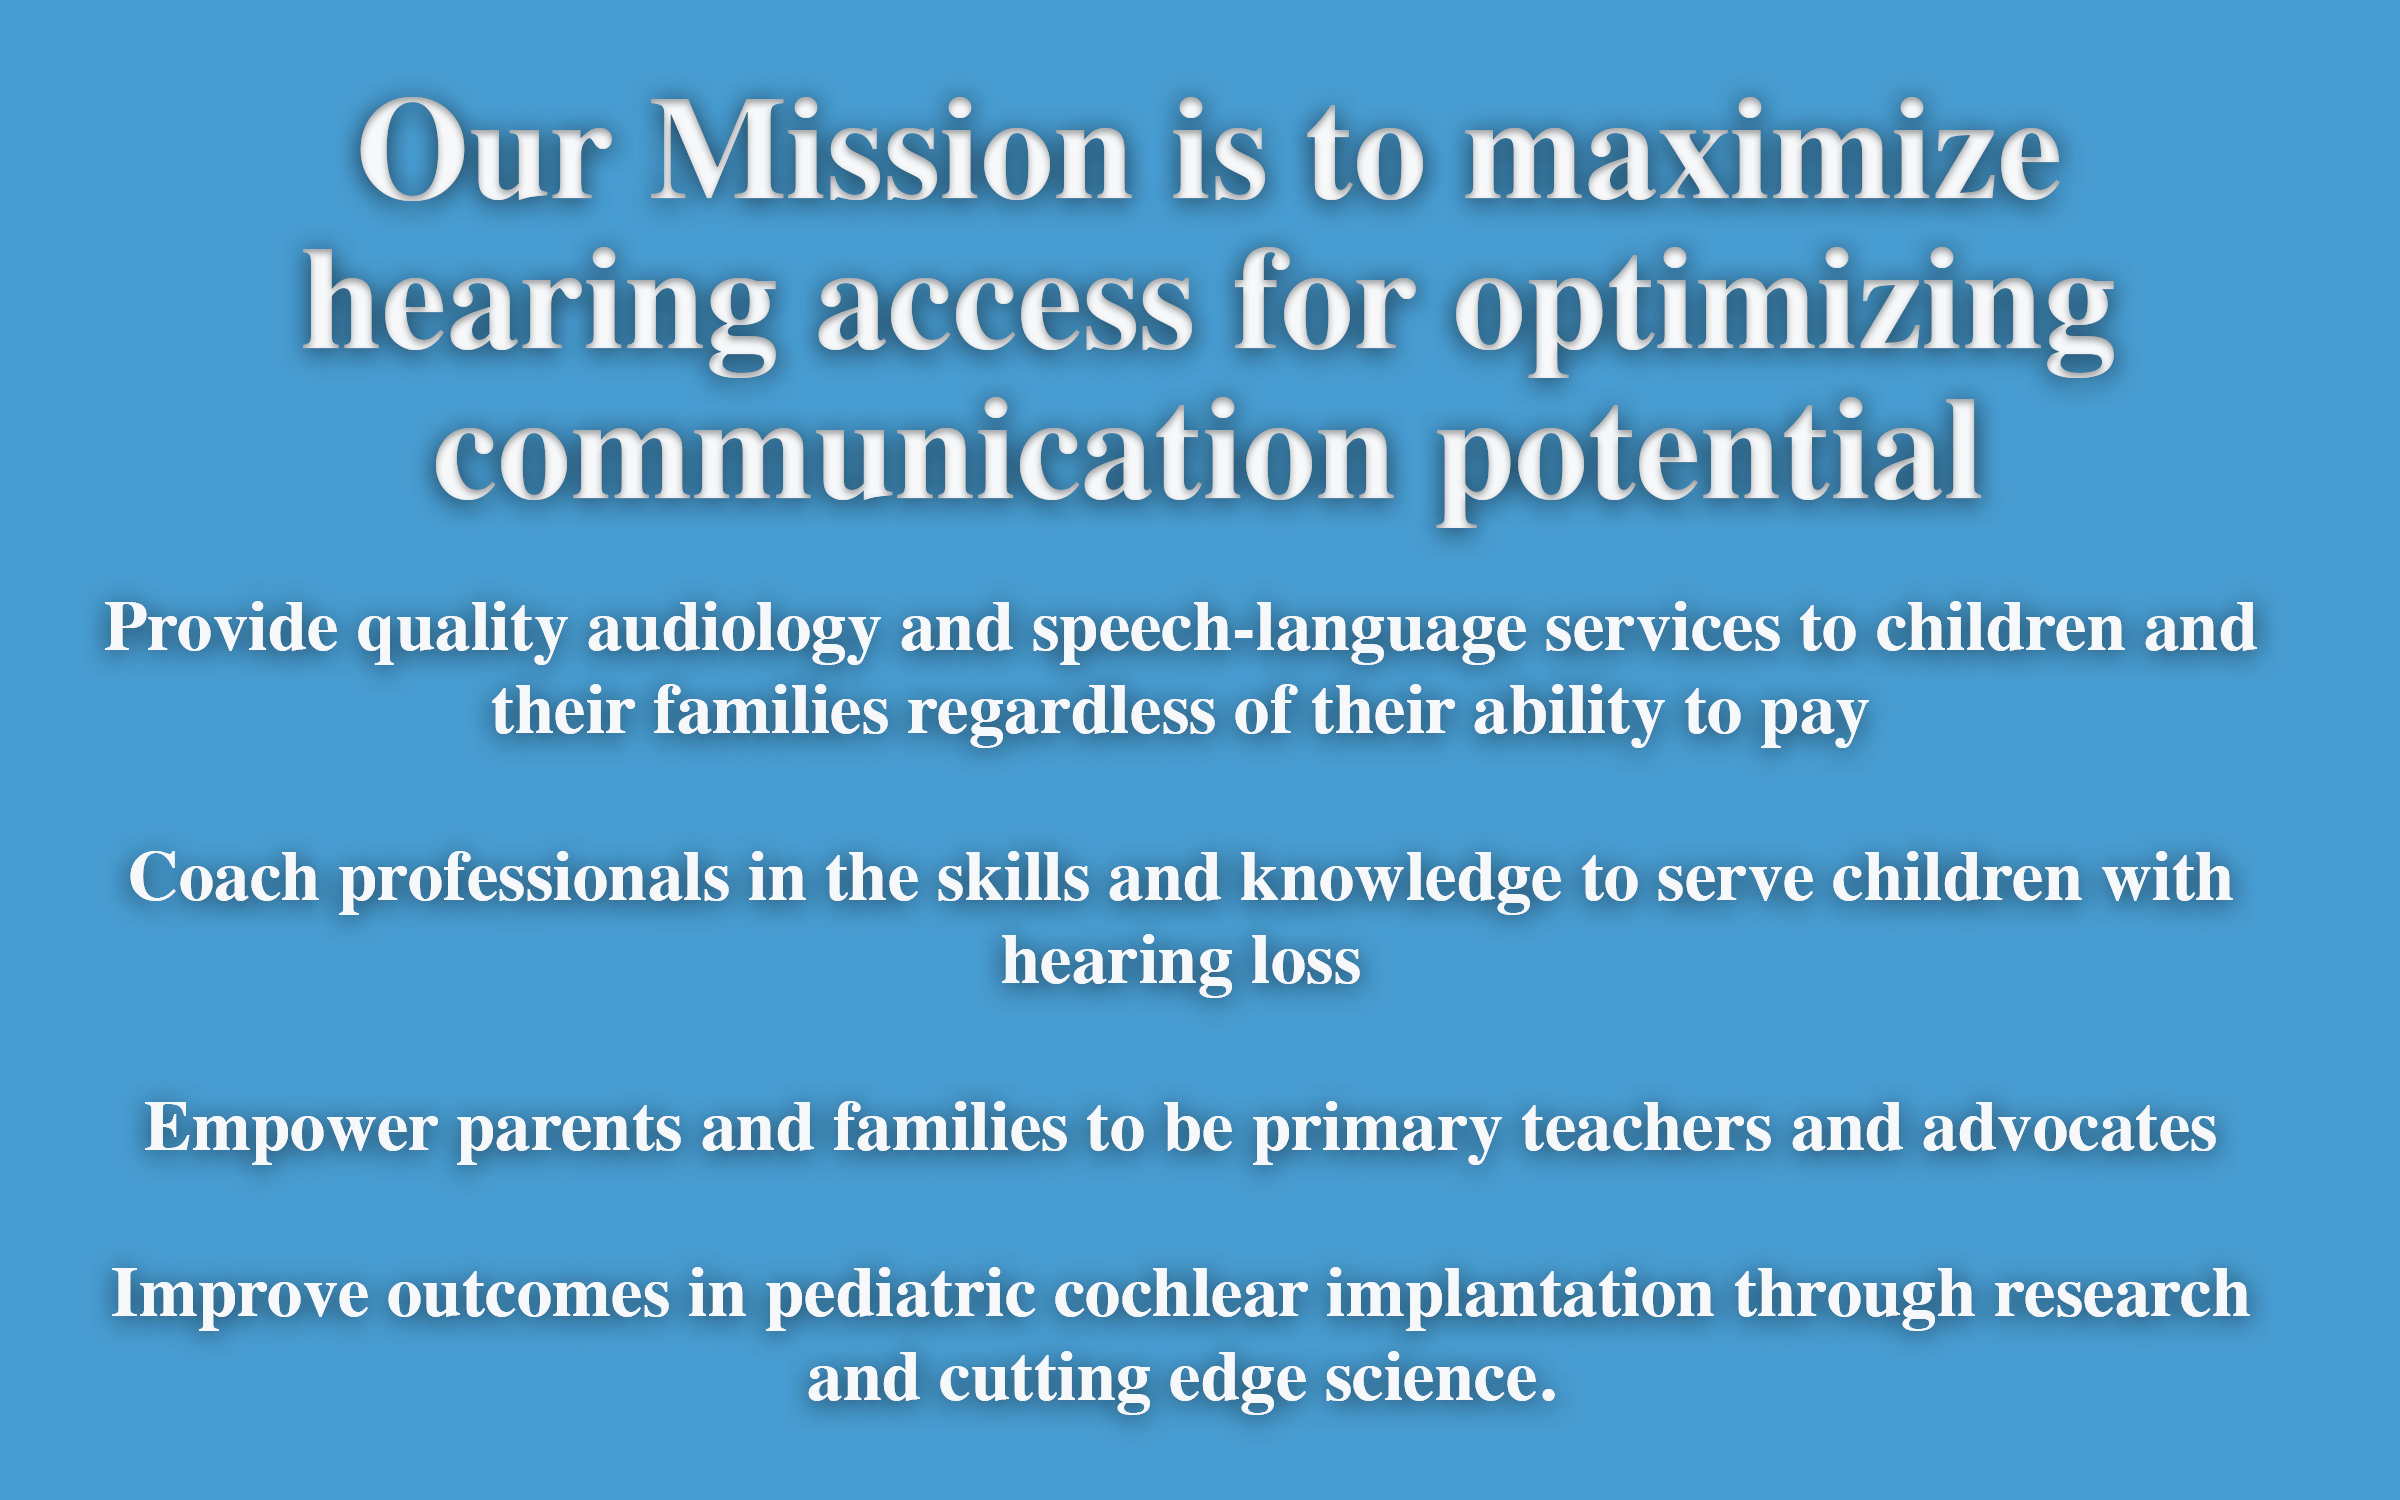 Our Mission is to Maximize hearing access for optimizing communication potential